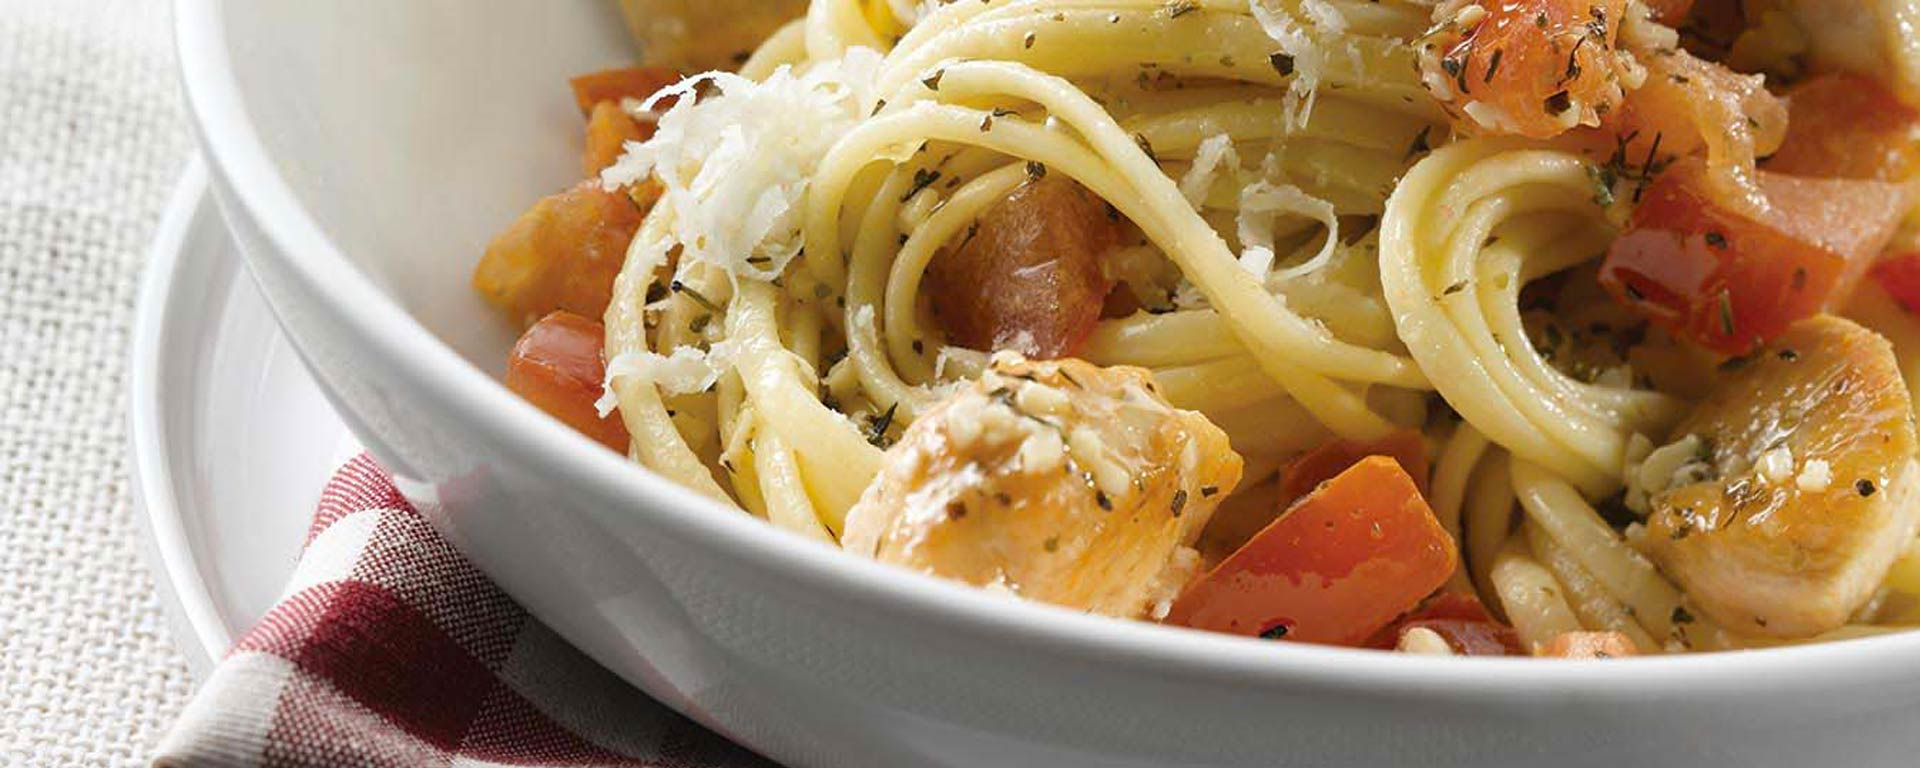 Photo for - Pomodoro Sauce with Chicken and Linguine